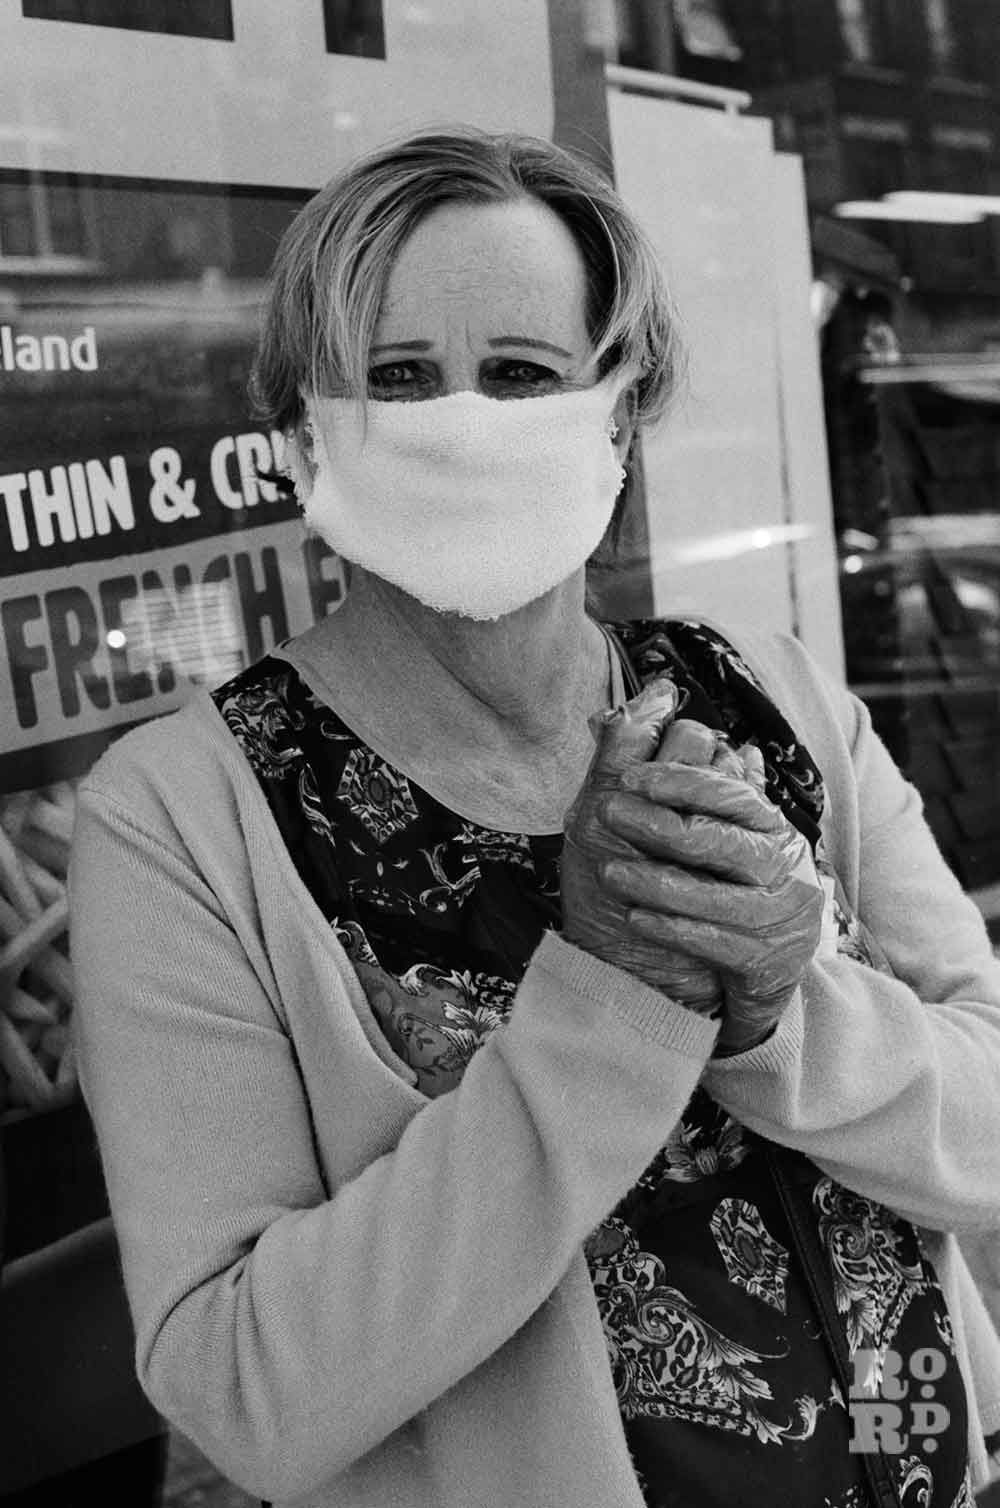 Black and white image of a woman looking into the camera wearing homemade mask and disposable gloves while queuing for Iceland